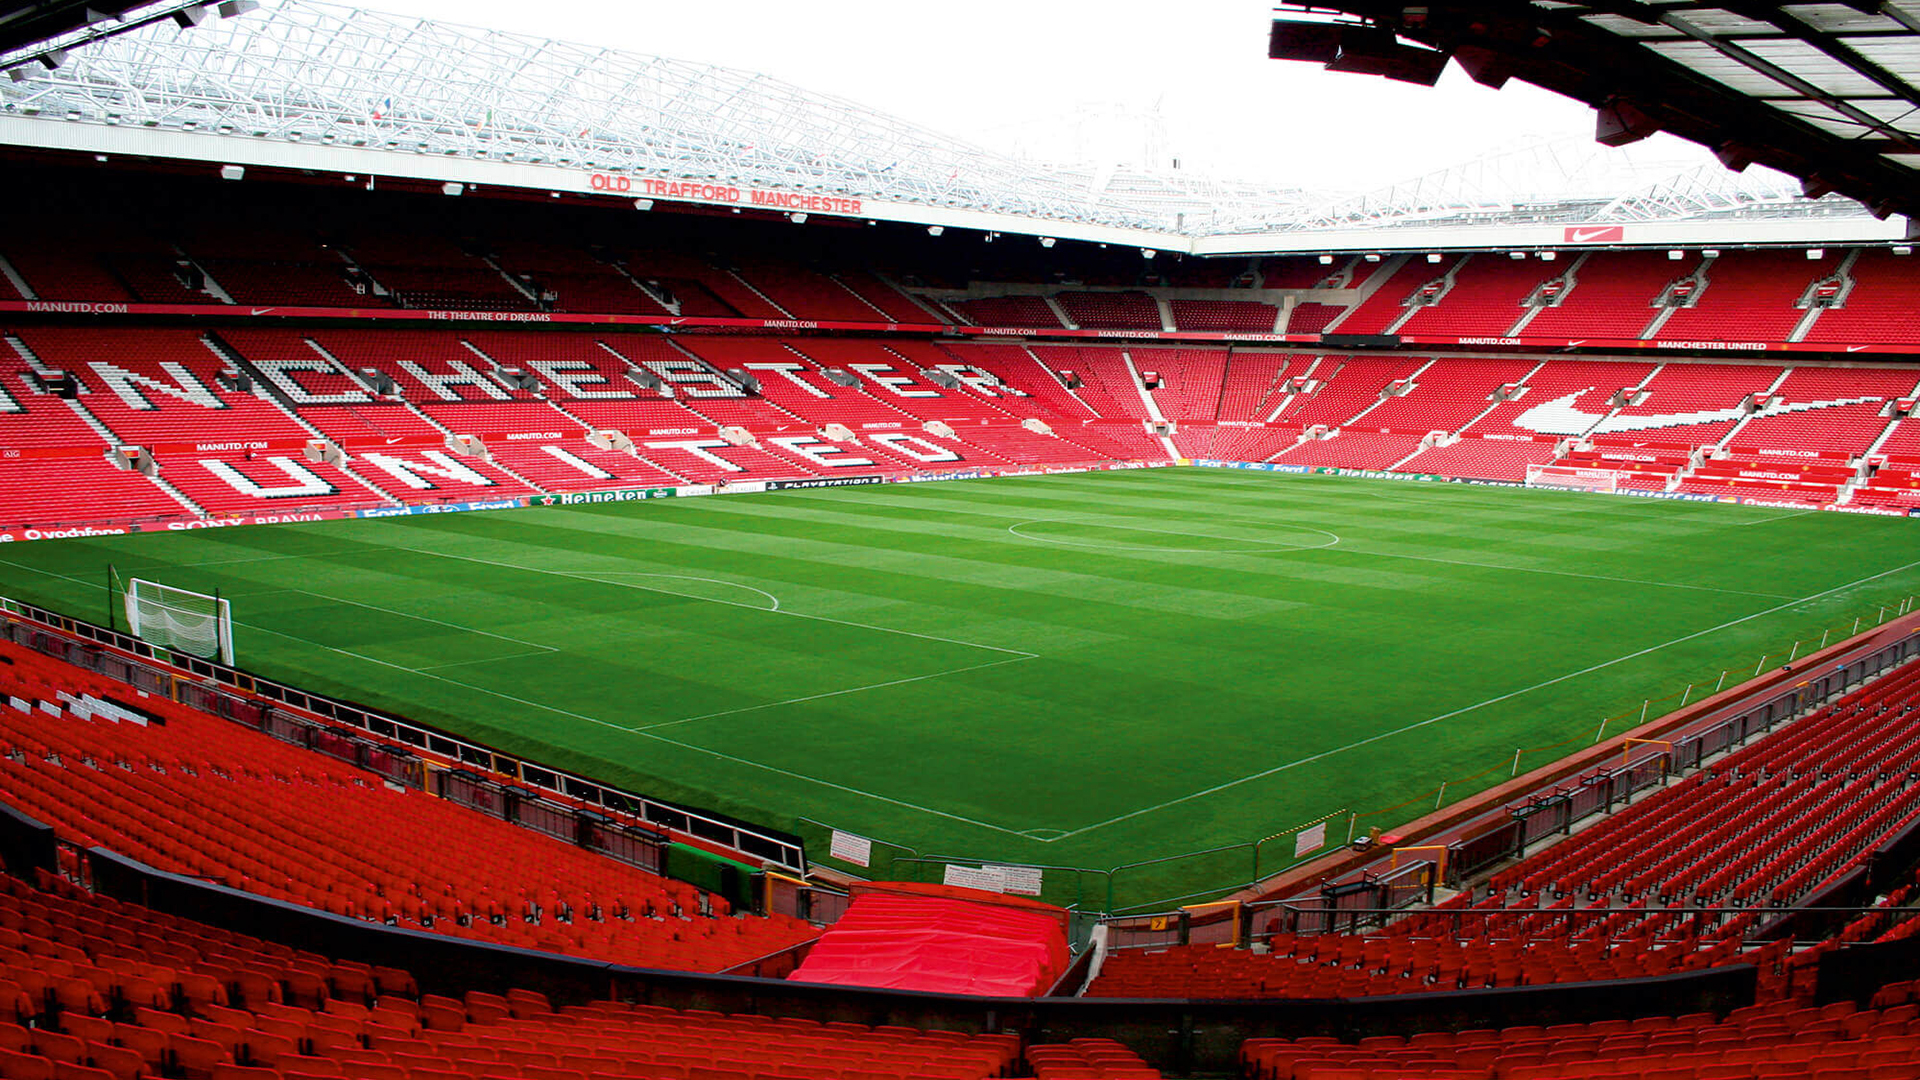 Old Trafford Stadium. Virtual background to use on Zoom, Microsoft Teams, Skype, Google Meet, WebEx or any other compatible app.